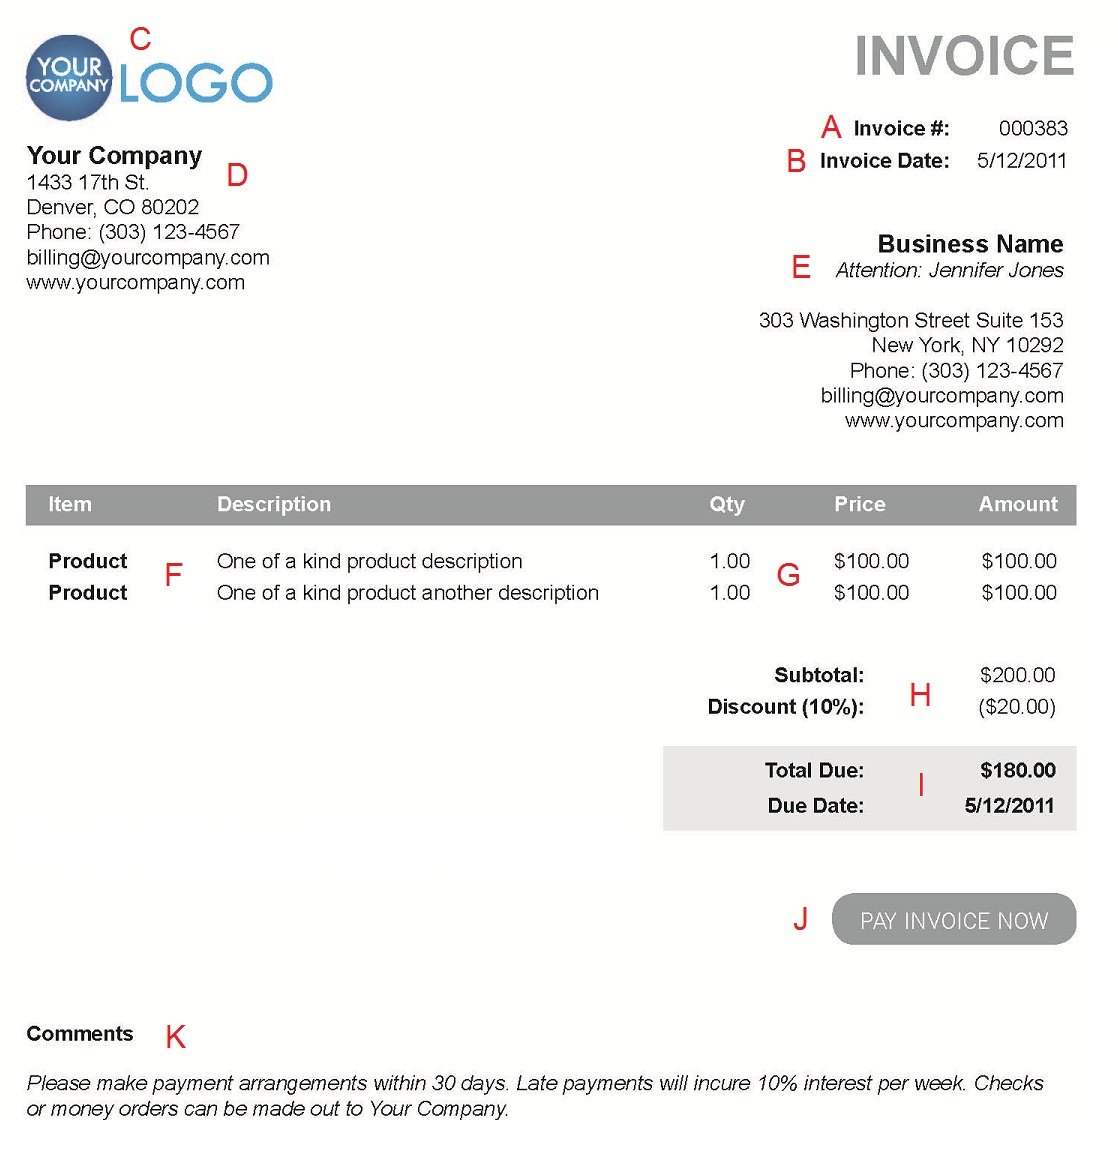 Ultrablogus  Surprising The  Different Sections Of An Electronic Payment Invoice With Remarkable A  With Divine Invoice Finance Providers Also Australian Tax Invoice Template Free In Addition Personalised Invoice Books And Free Blank Invoices Printable As Well As What Do You Mean By Invoice Additionally Payment On Receipt Of Invoice From Paysimplecom With Ultrablogus  Remarkable The  Different Sections Of An Electronic Payment Invoice With Divine A  And Surprising Invoice Finance Providers Also Australian Tax Invoice Template Free In Addition Personalised Invoice Books From Paysimplecom